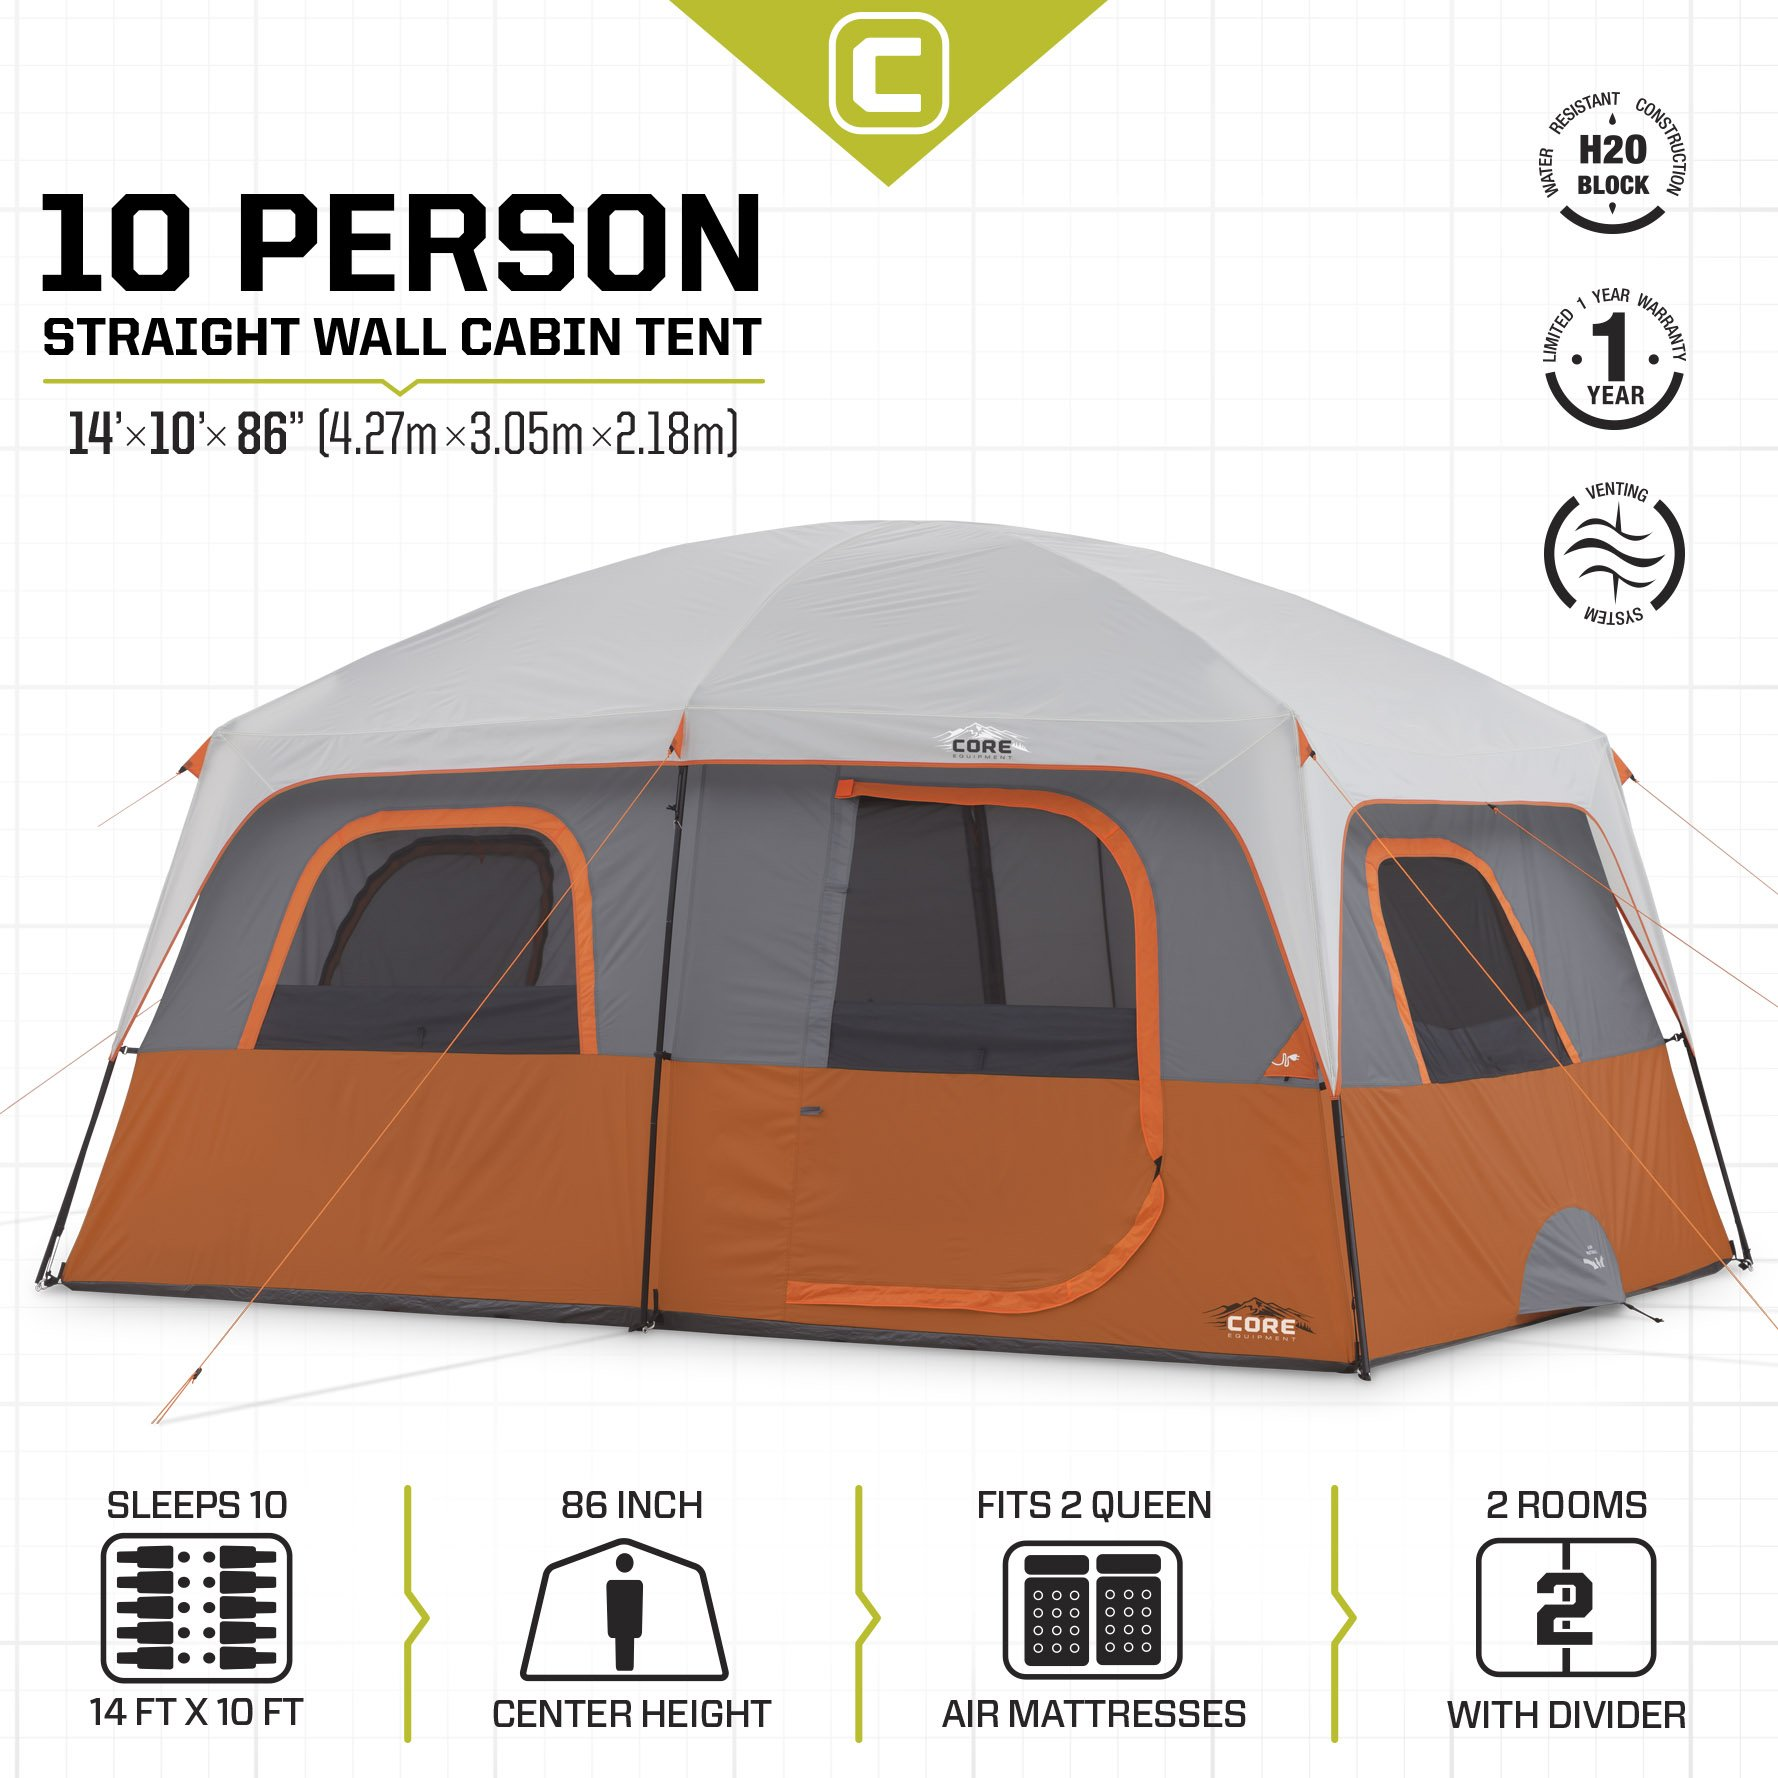 CORE 10 Person Straight Wall Cabin Tent - 14' x 10' by CORE (Image #3)